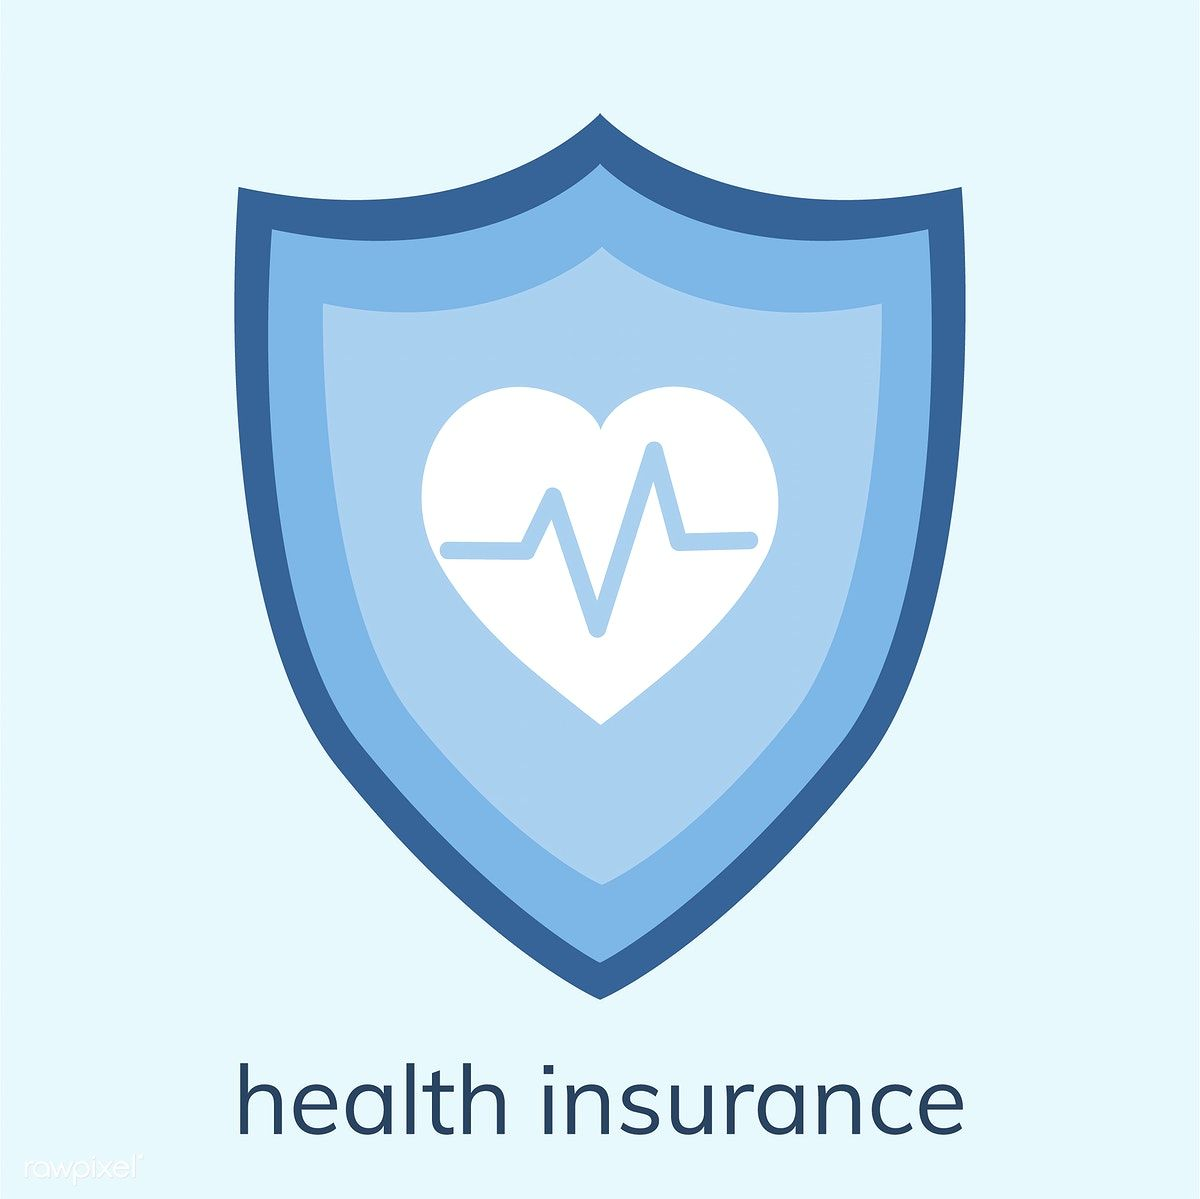 Illustration of a health insurance icon free image by